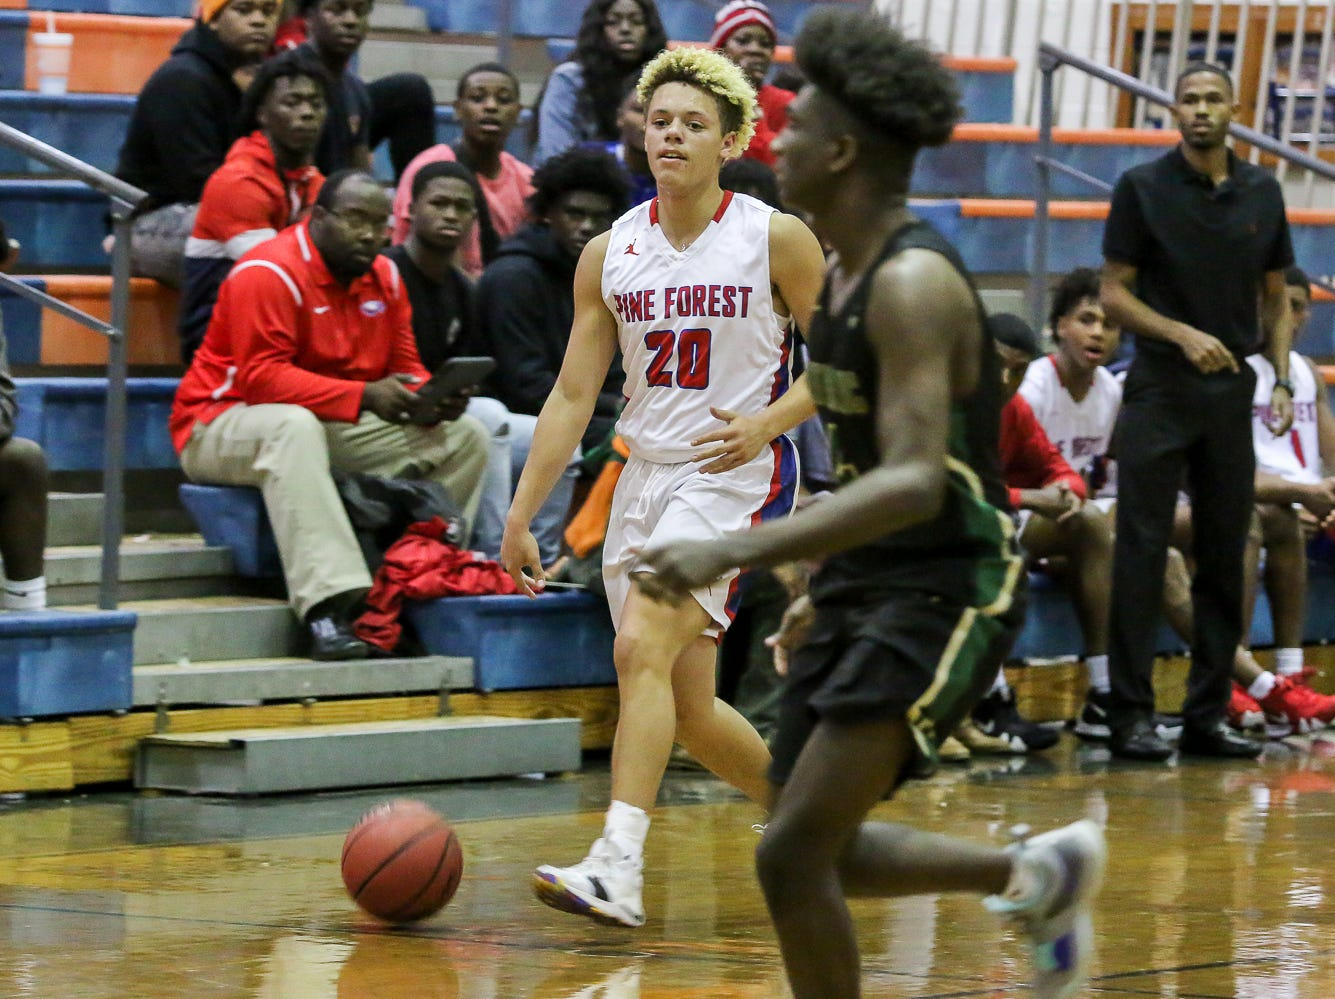 Pine Forest's Tyrese Powell (20) dribbles the ball up the court against Pensacola Catholic in the preseason basketball jamboree at Escambia High School on Tuesday, November 20, 2018.